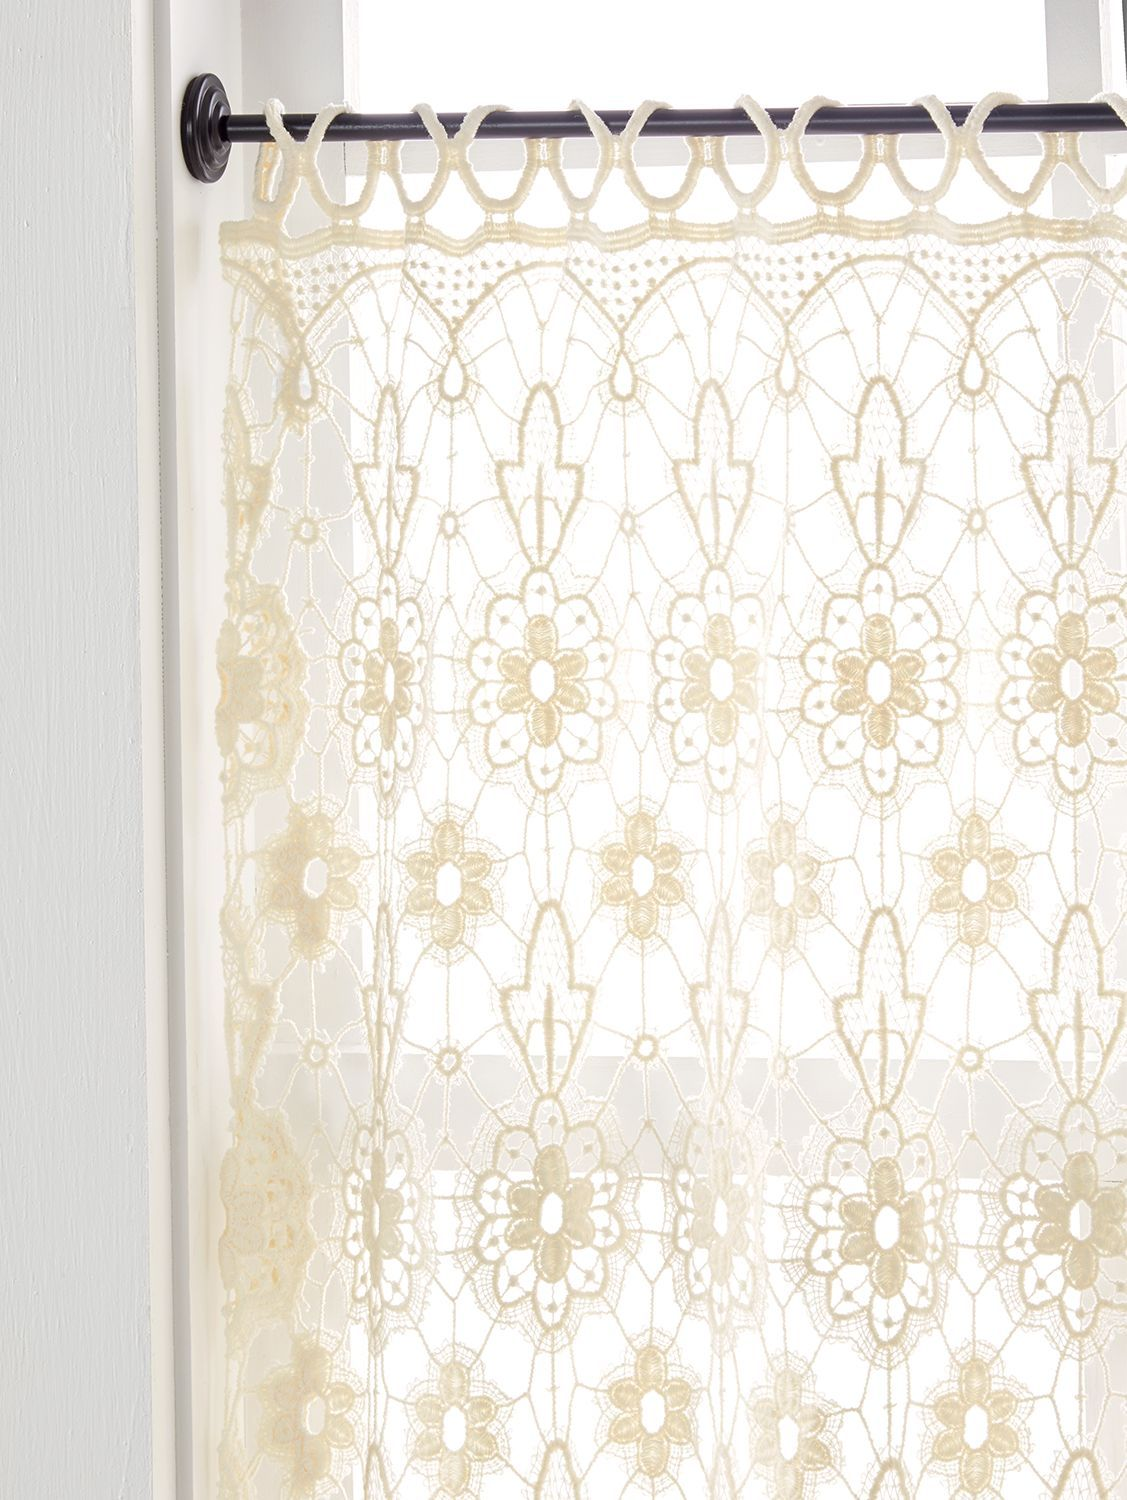 Macrame Medallions Tier Panel In 2020 Boho Kitchen Curtains Living Room Decor Curtains Curtains #tier #curtains #living #room